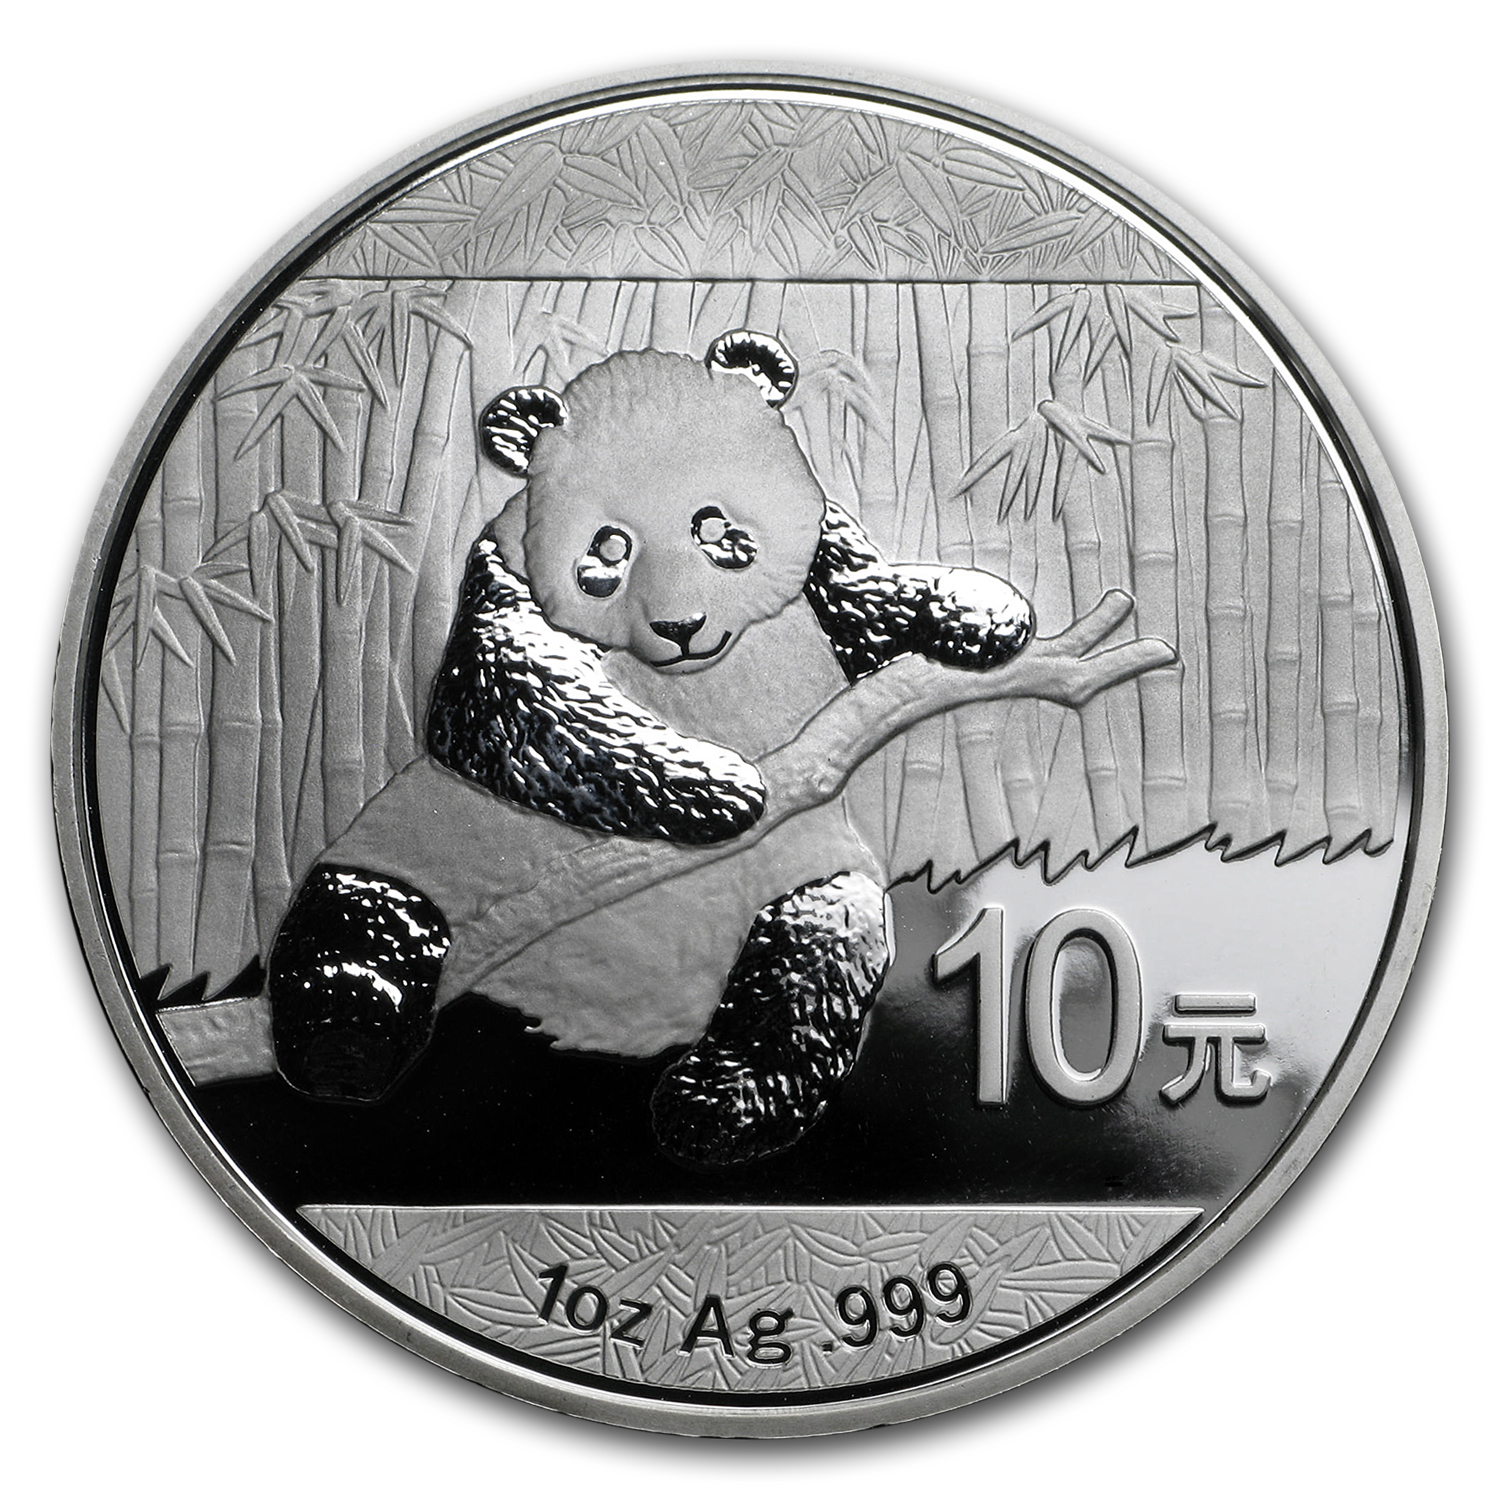 2014 China 1 oz Silver Panda BU (In Capsule)